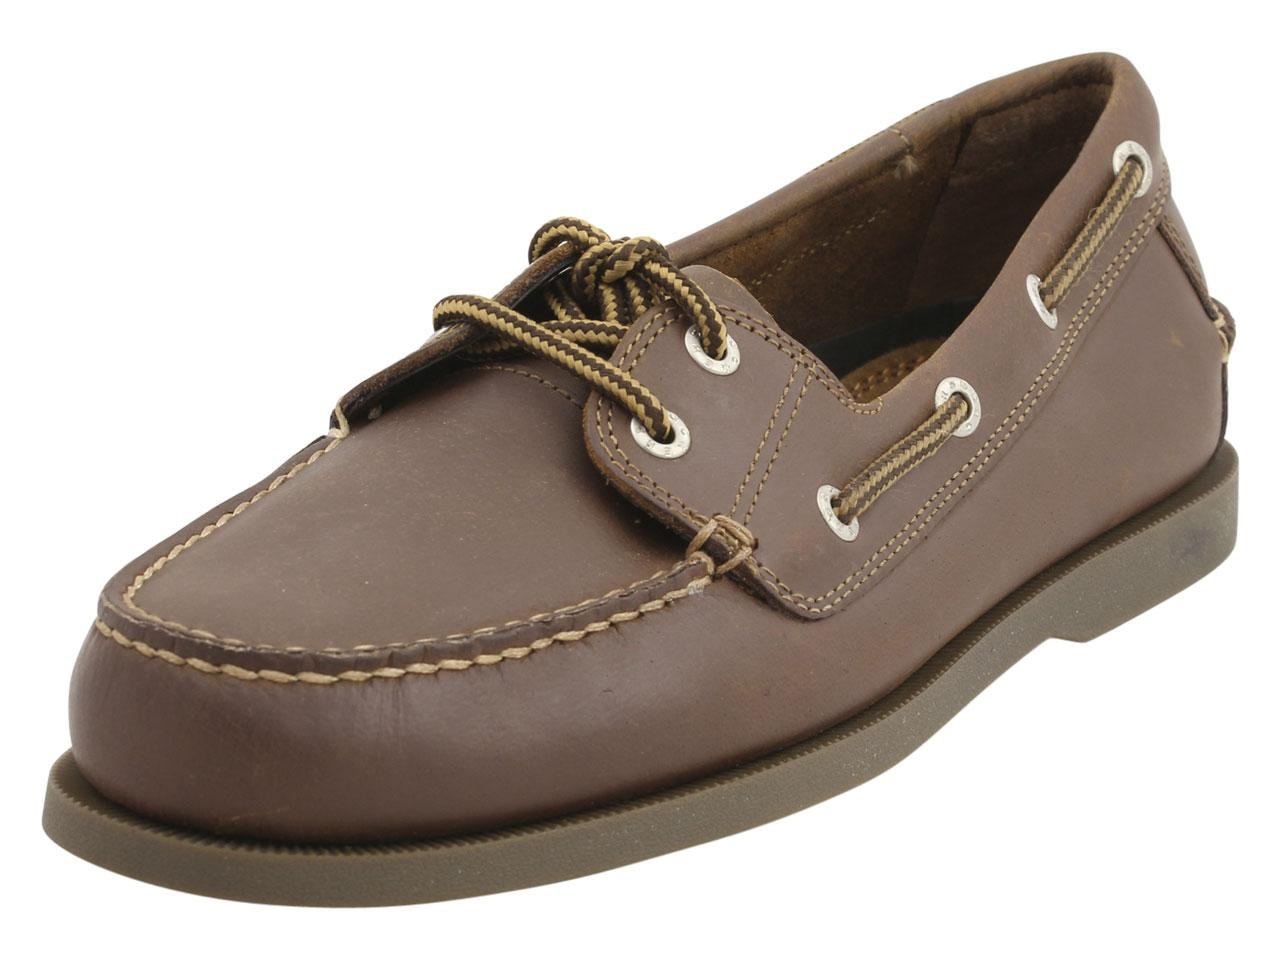 92e788bf0a77 Dockers Men s Vargas Loafers Boat Shoes